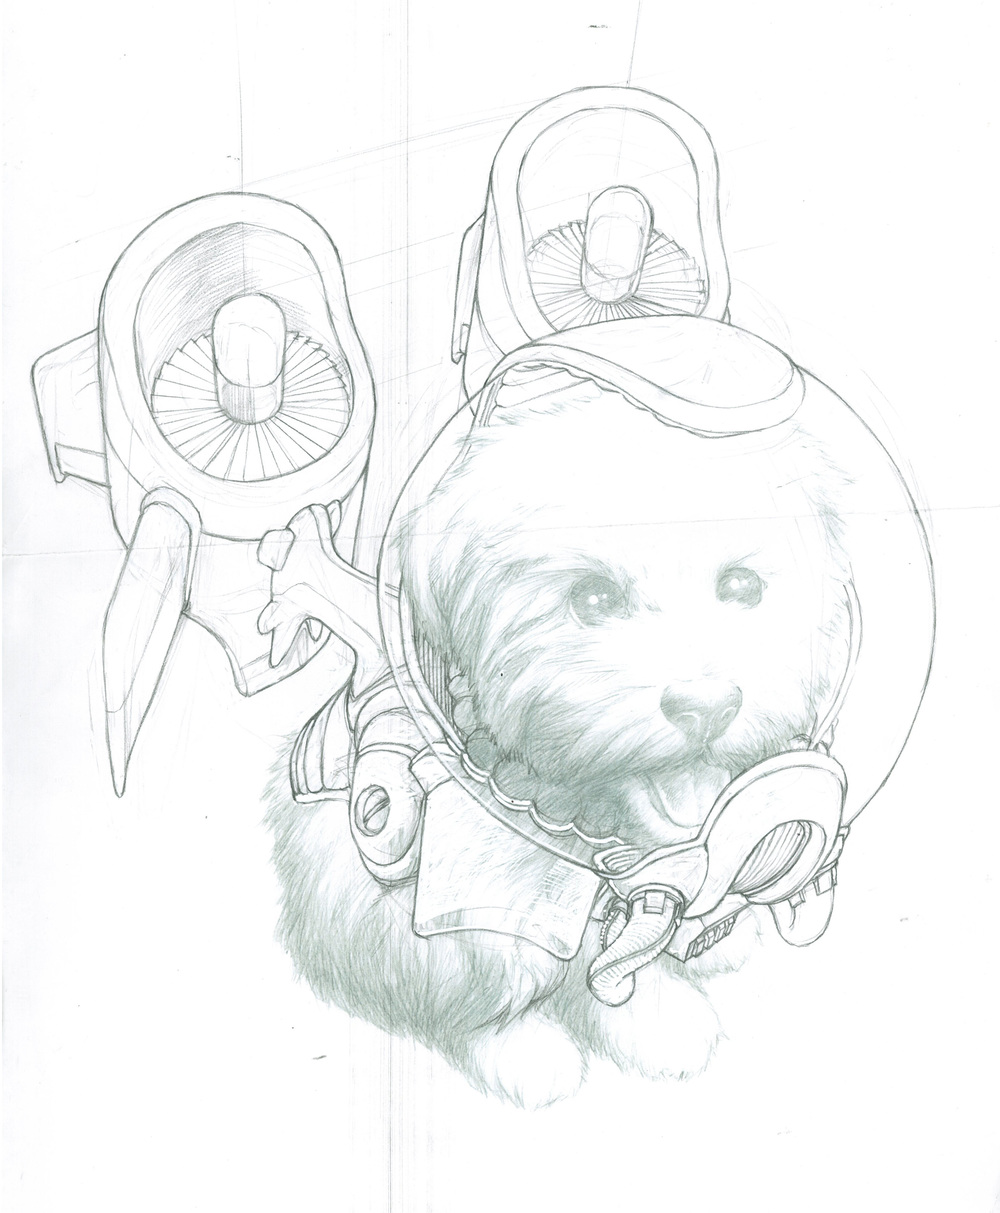 Here is the jetpack design stage for Fluffernutter. I thought he needed a giant fishbowl-style space helmet.